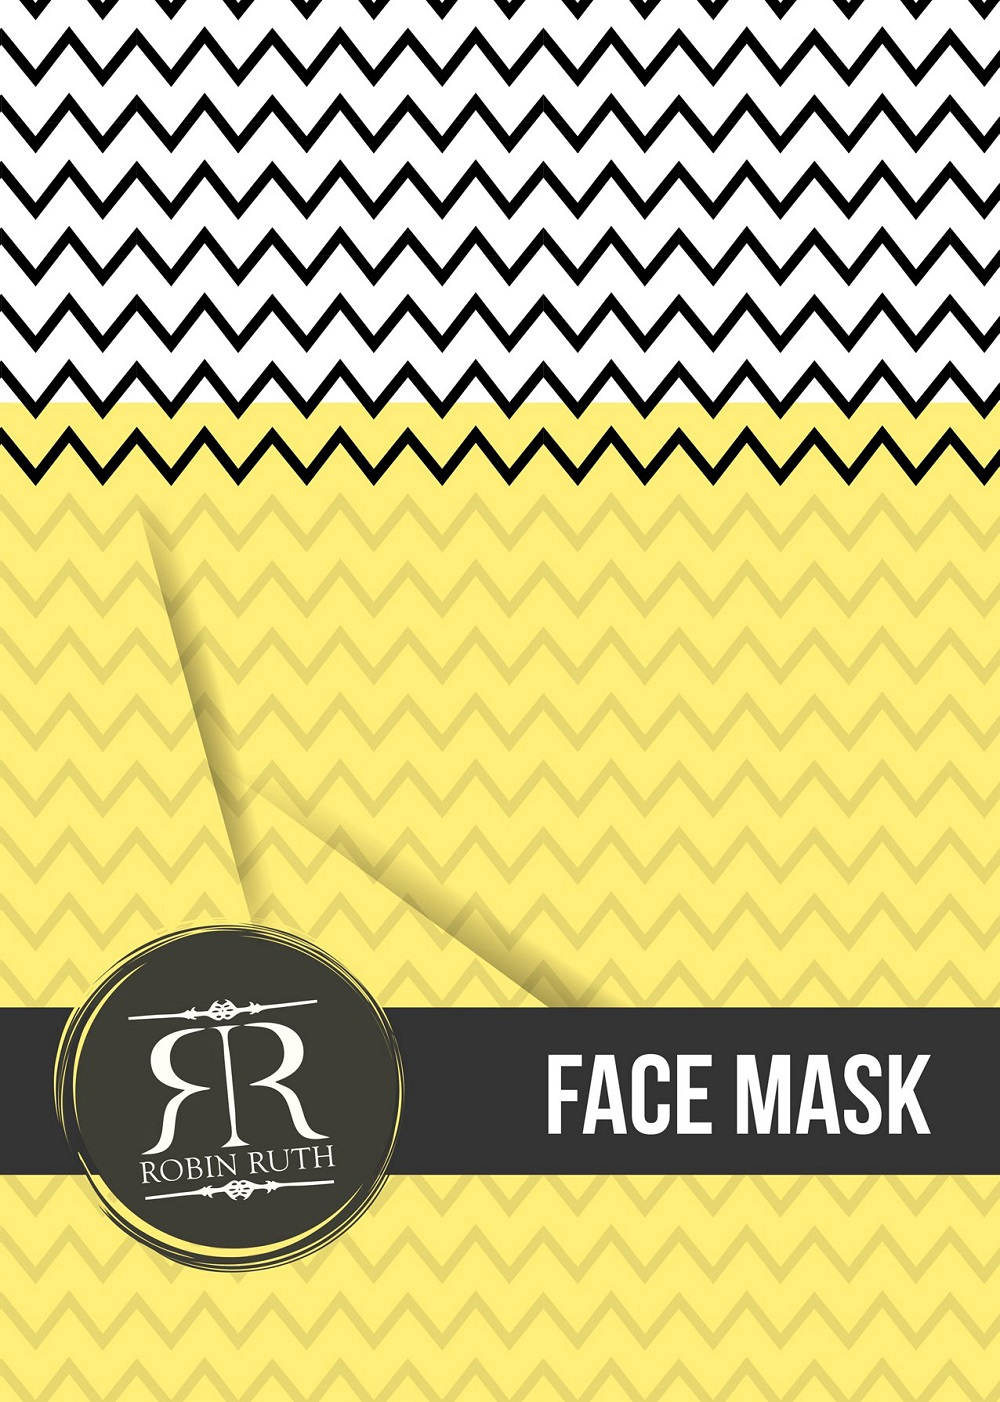 robin ruth face mask logo